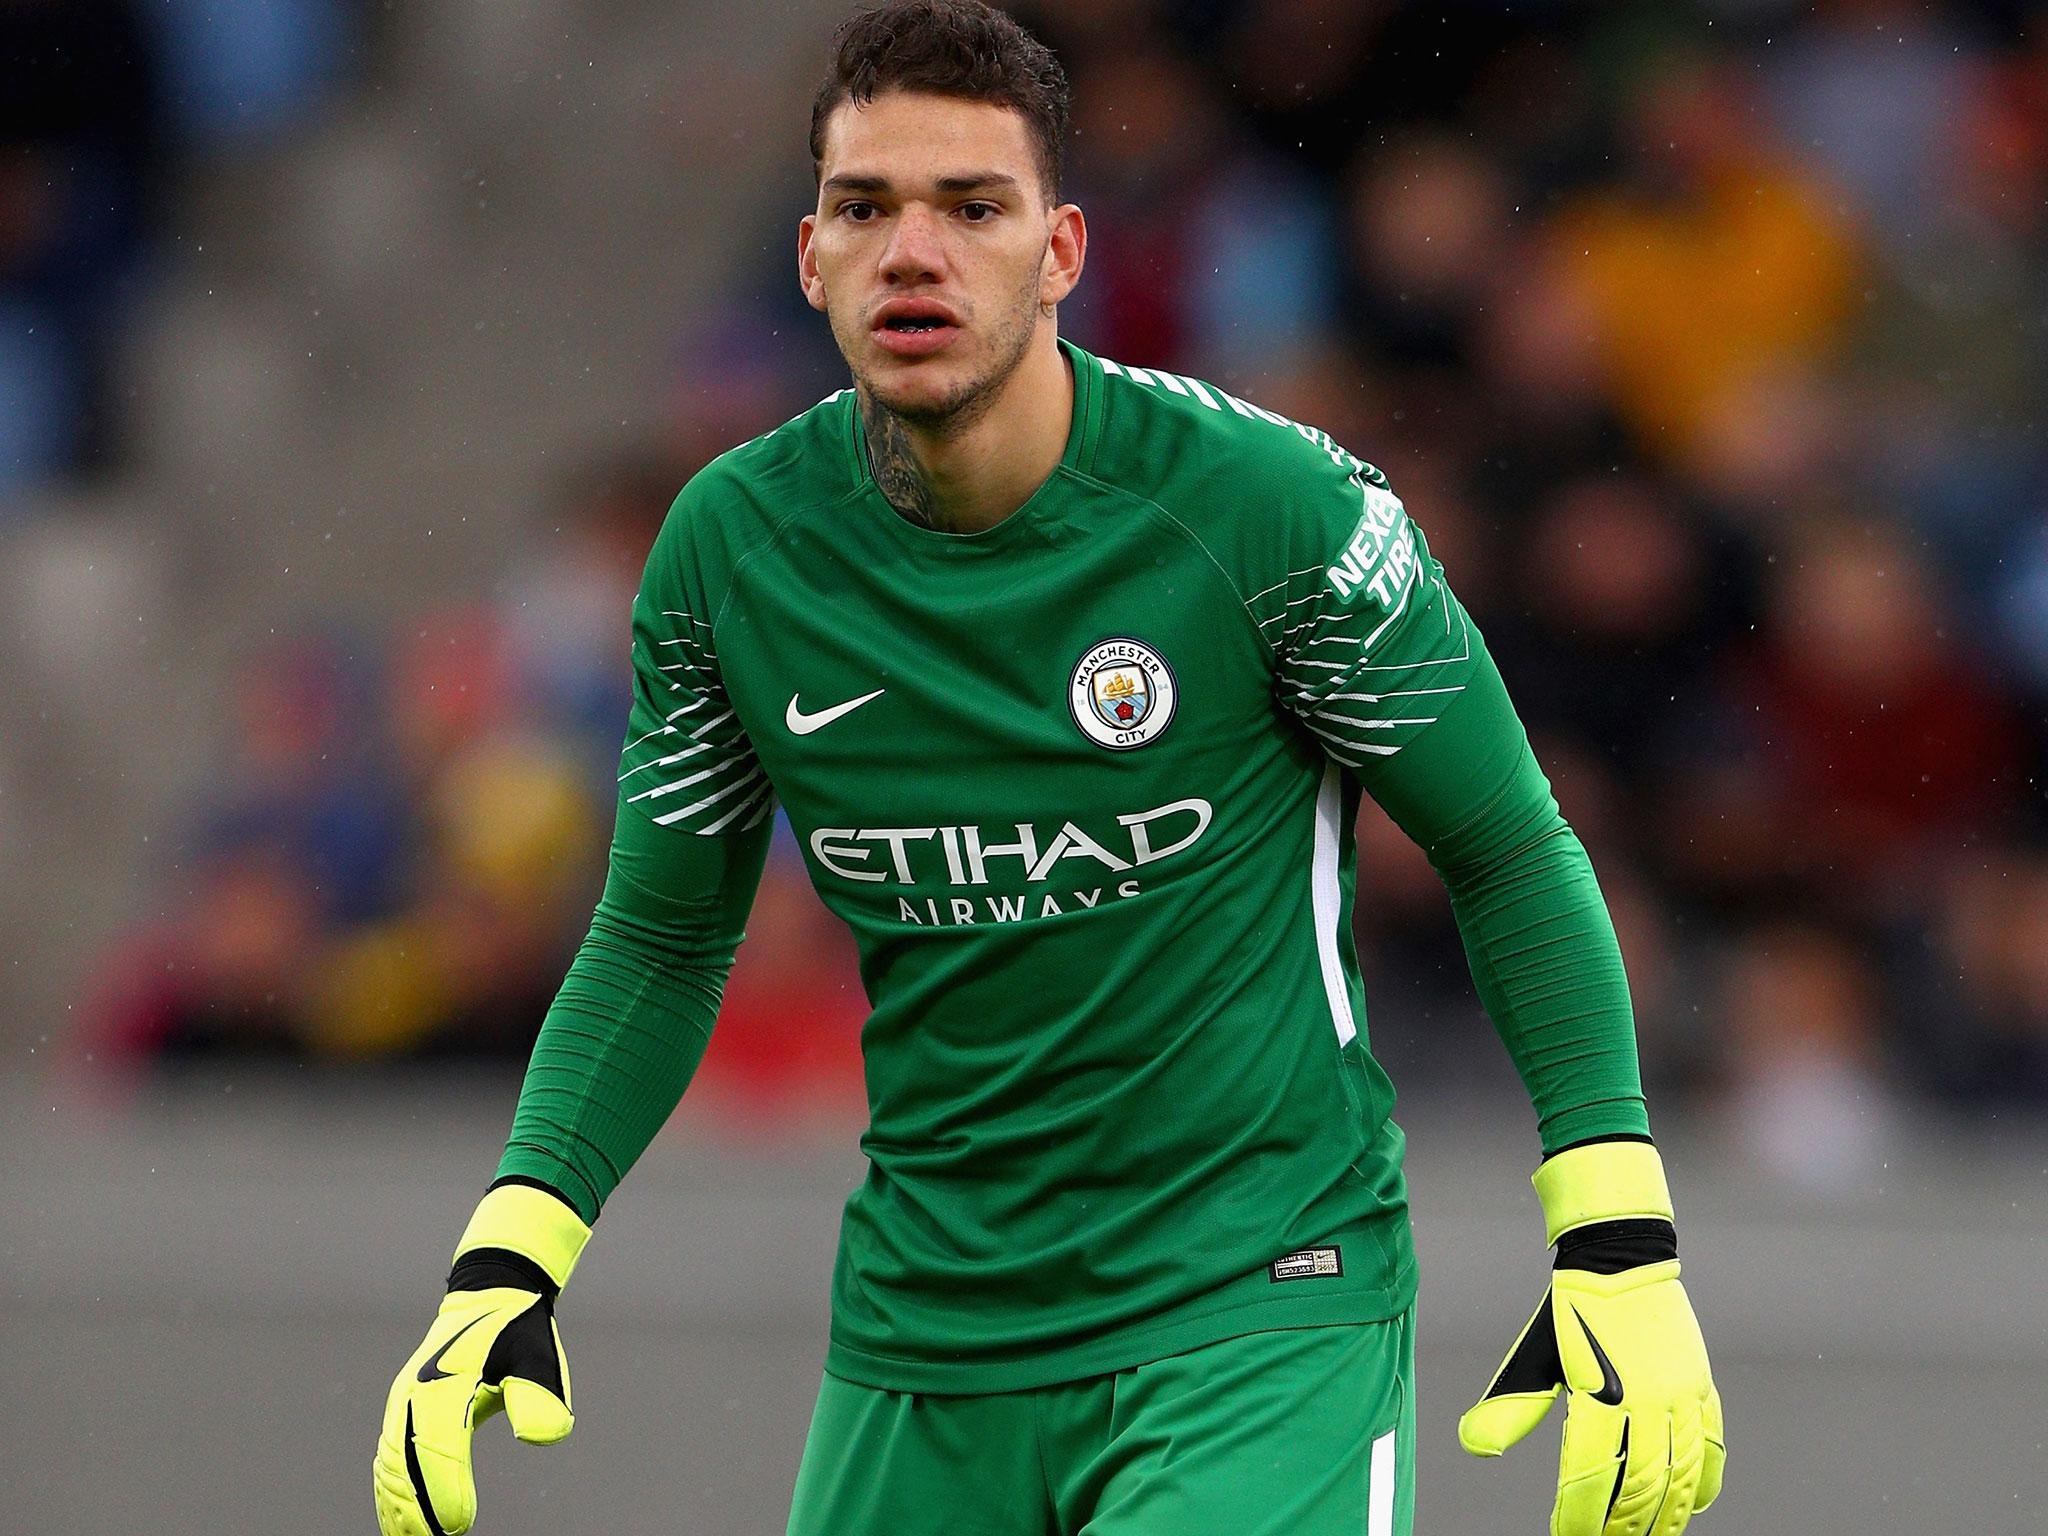 Ederson unfazed by world record price tag ahead of debut season at